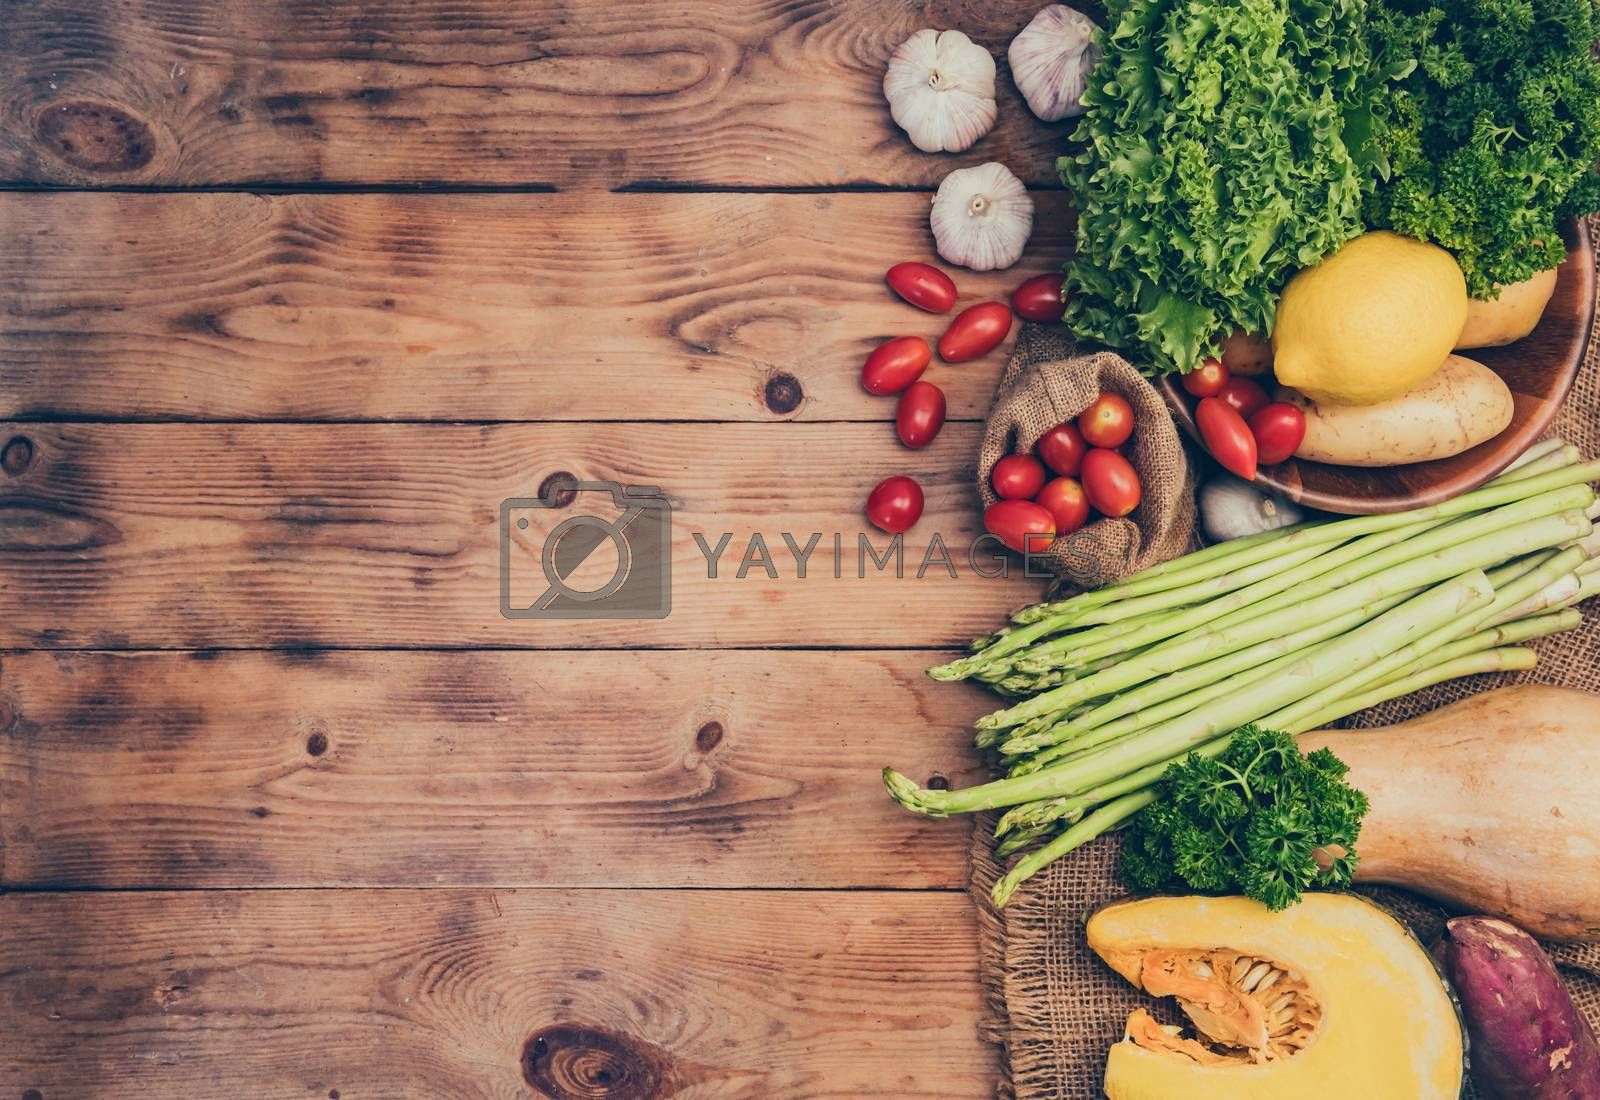 Fresh organic vegetables on wood backgroundfor cooking salad. Diet and healthy food. Fall harvest cornucopia in autumn season. by graphixchon